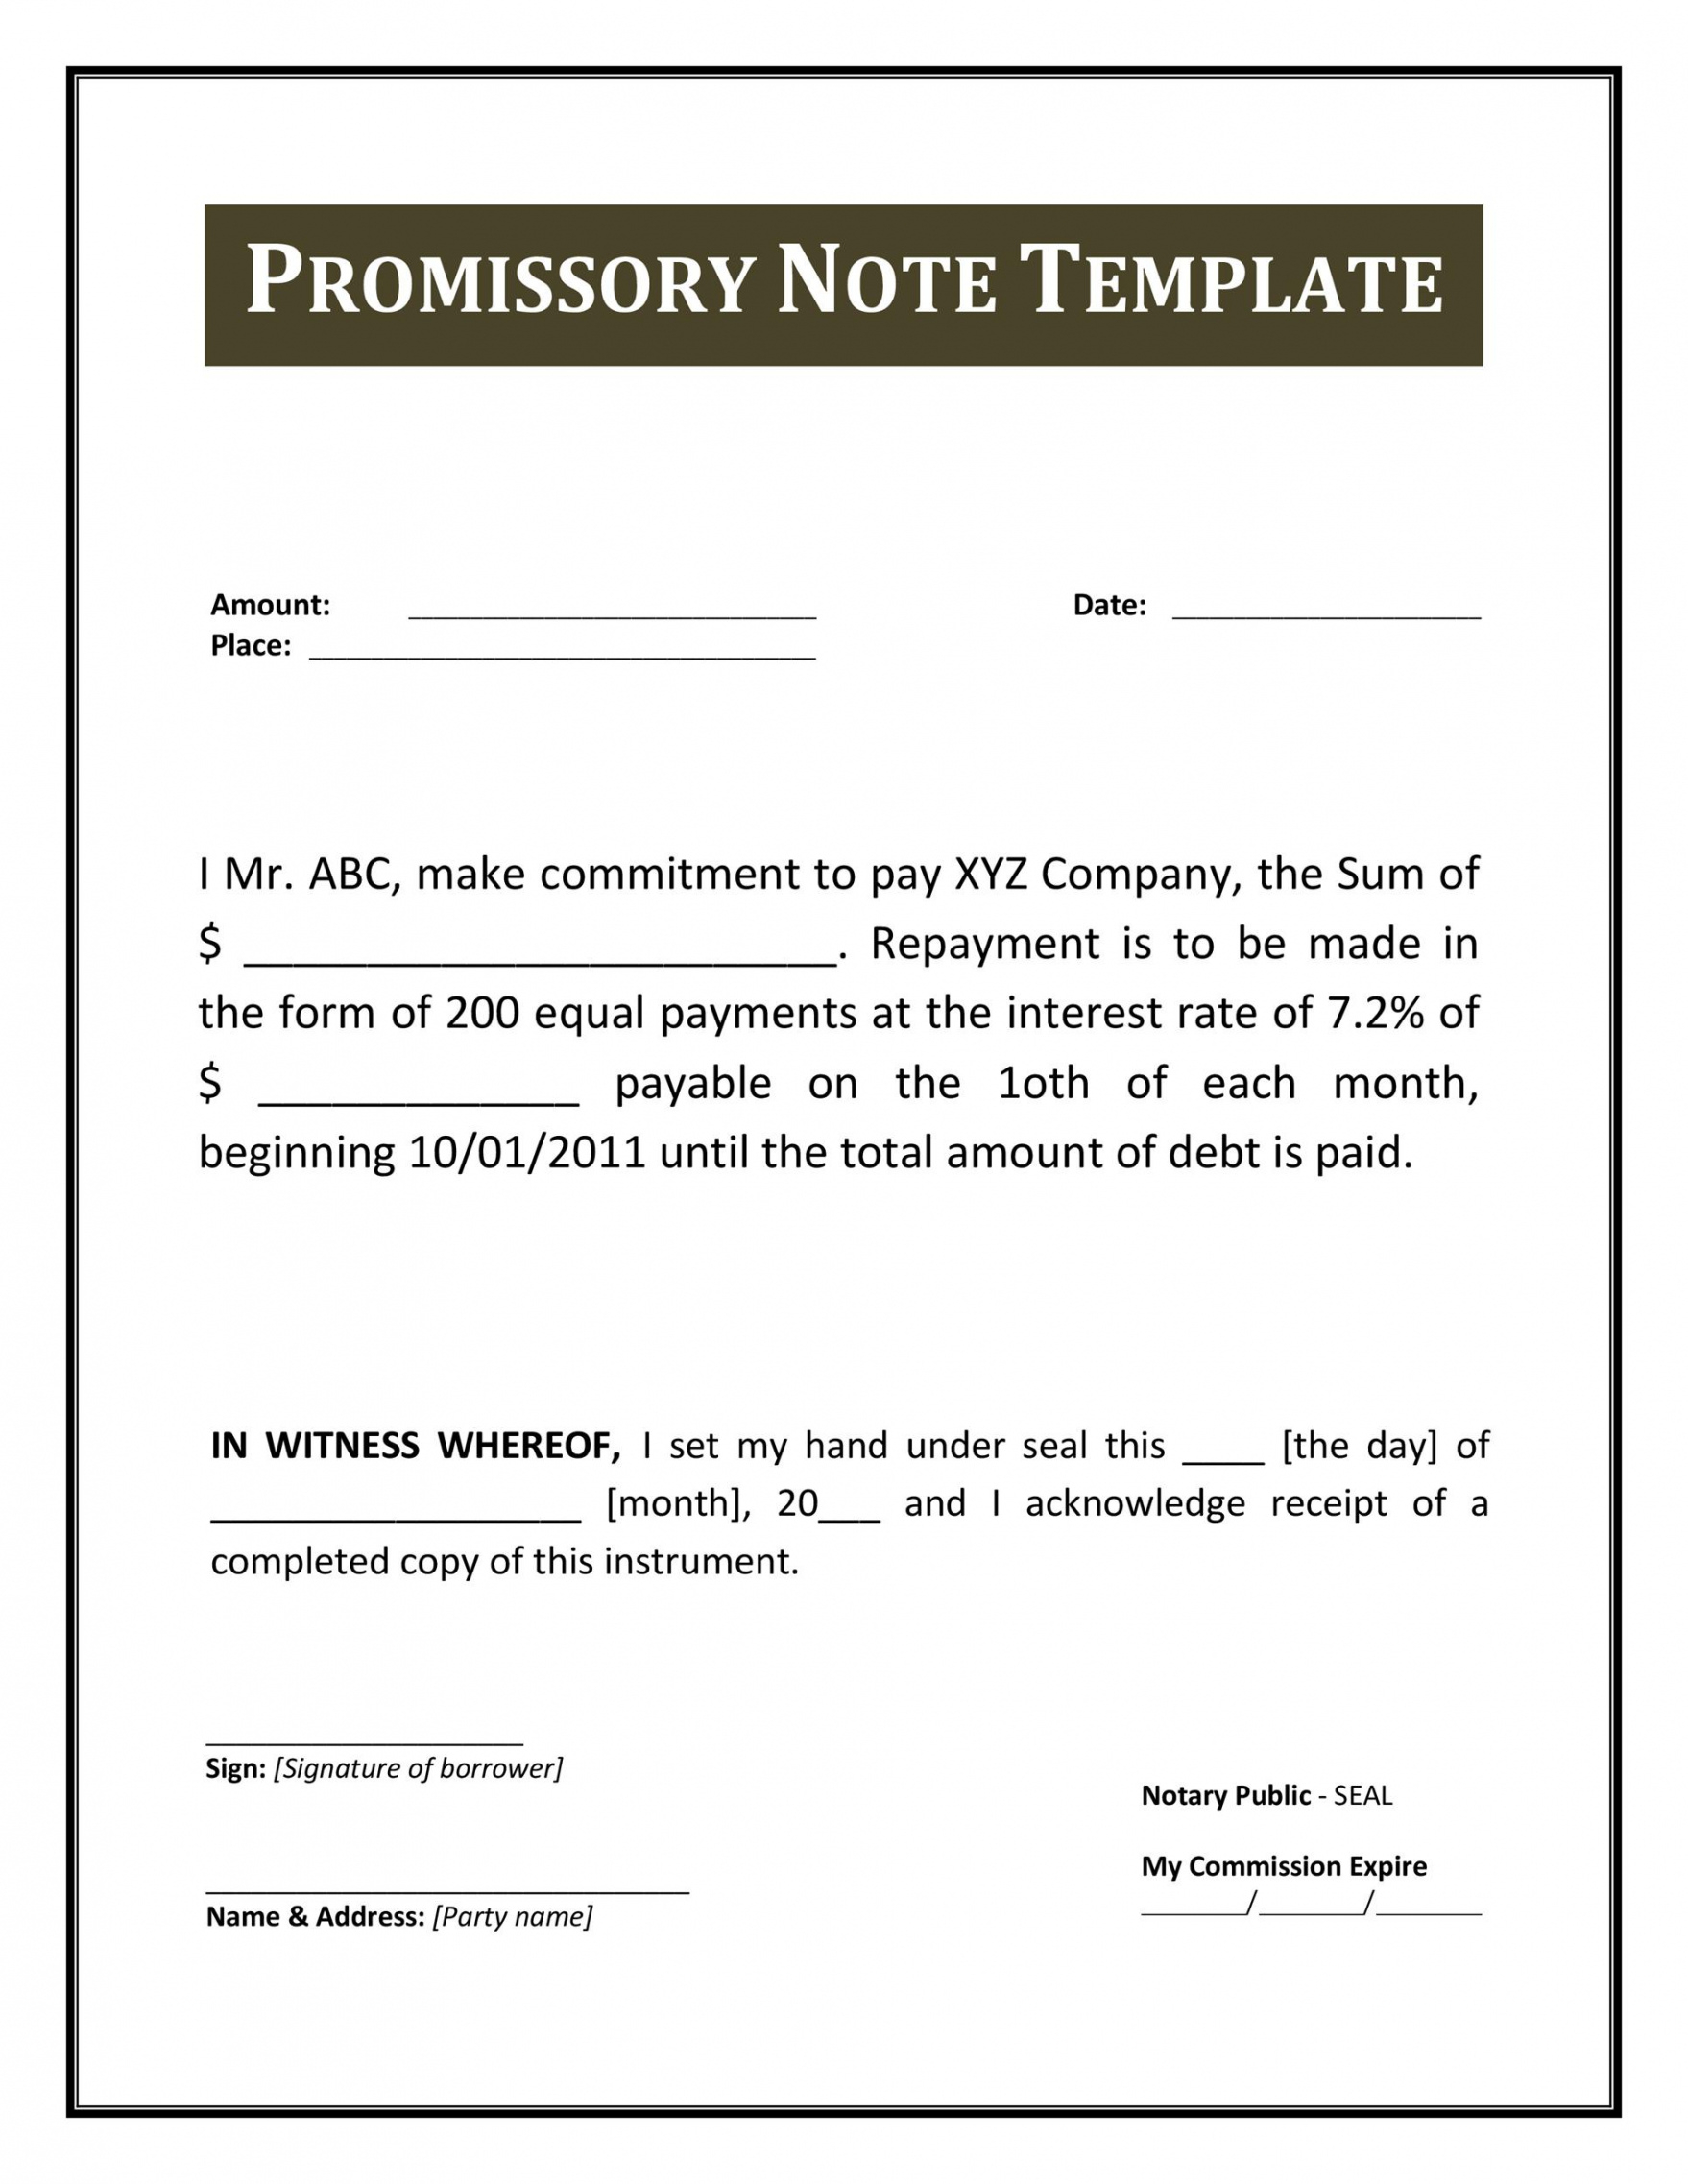 editable 45 free promissory note templates & forms word & pdf ᐅ promise to pay agreement template example